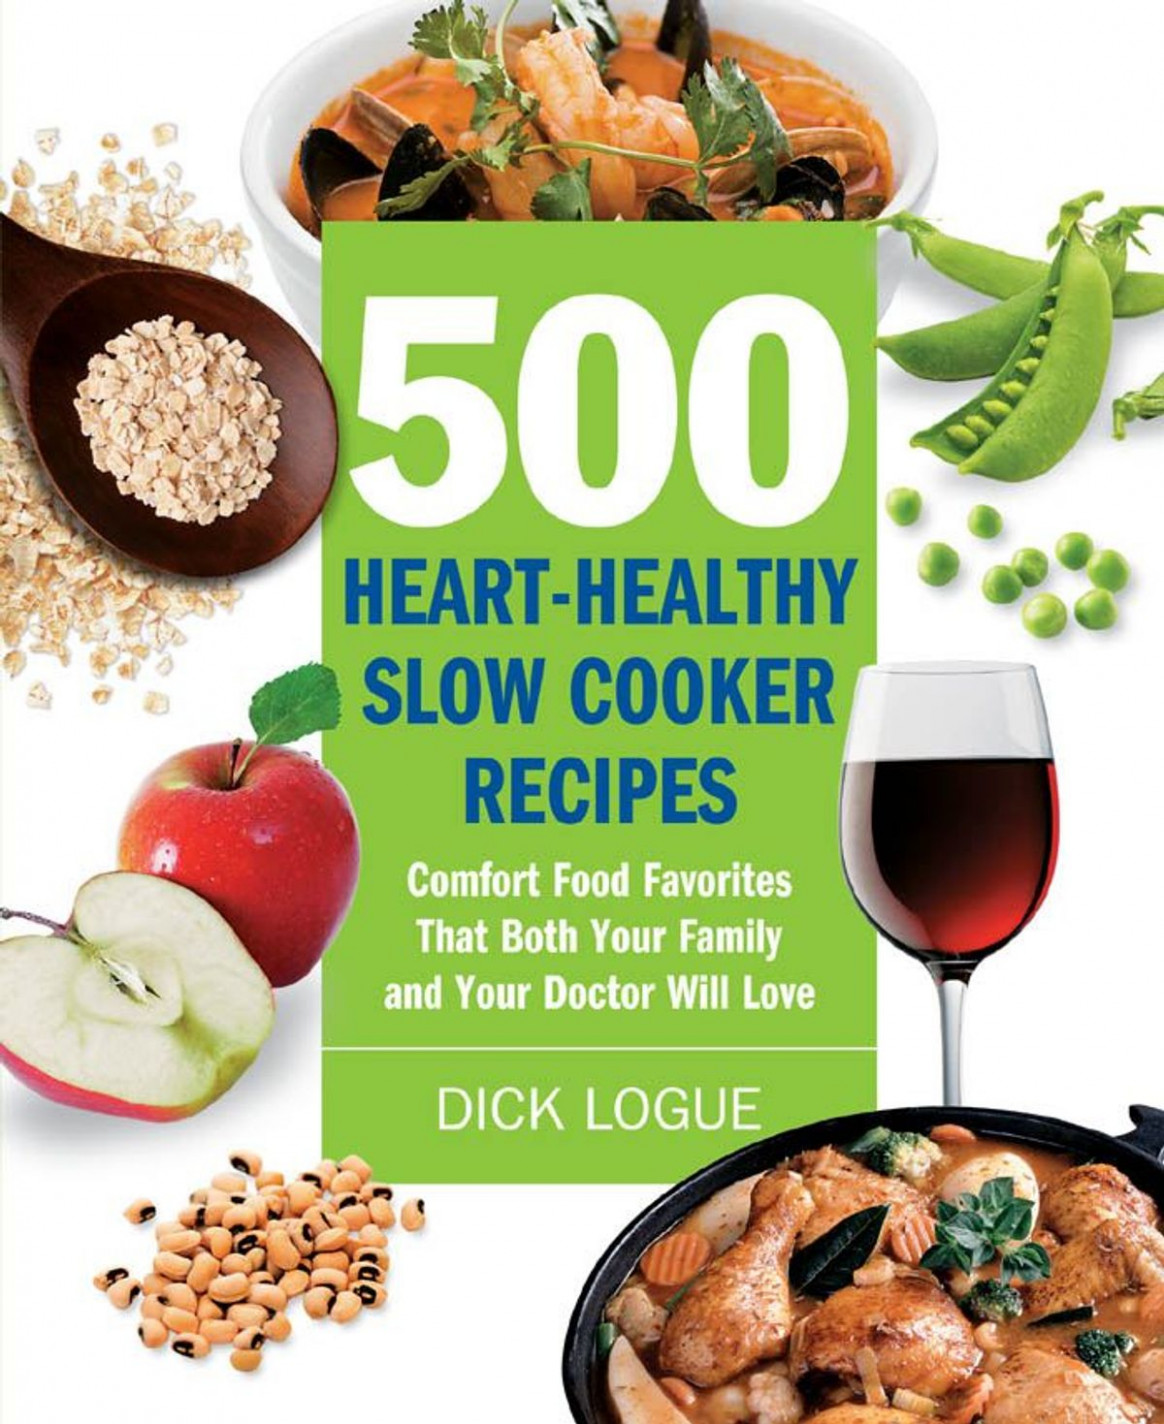 15 Heart Healthy Slow Cooker Recipes: Comfort Food Favorites That Both  Your Family And Doctor Will Love Ebook By Dick Logue - Rakuten Kobo - Recipes For A Healthy Heart